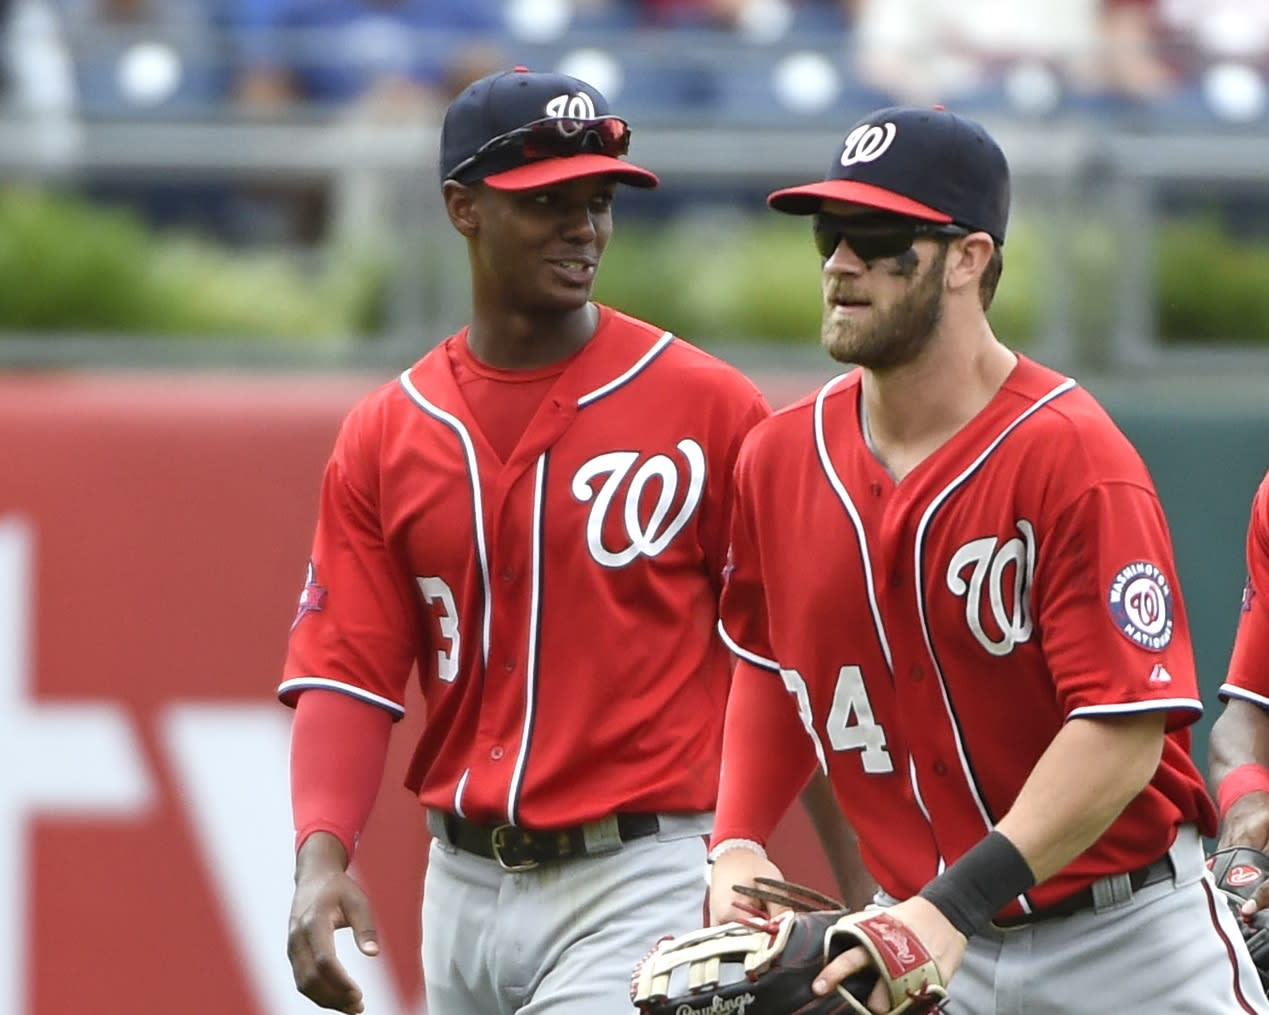 Harper returns to Nats lineup, Taylor still hurting